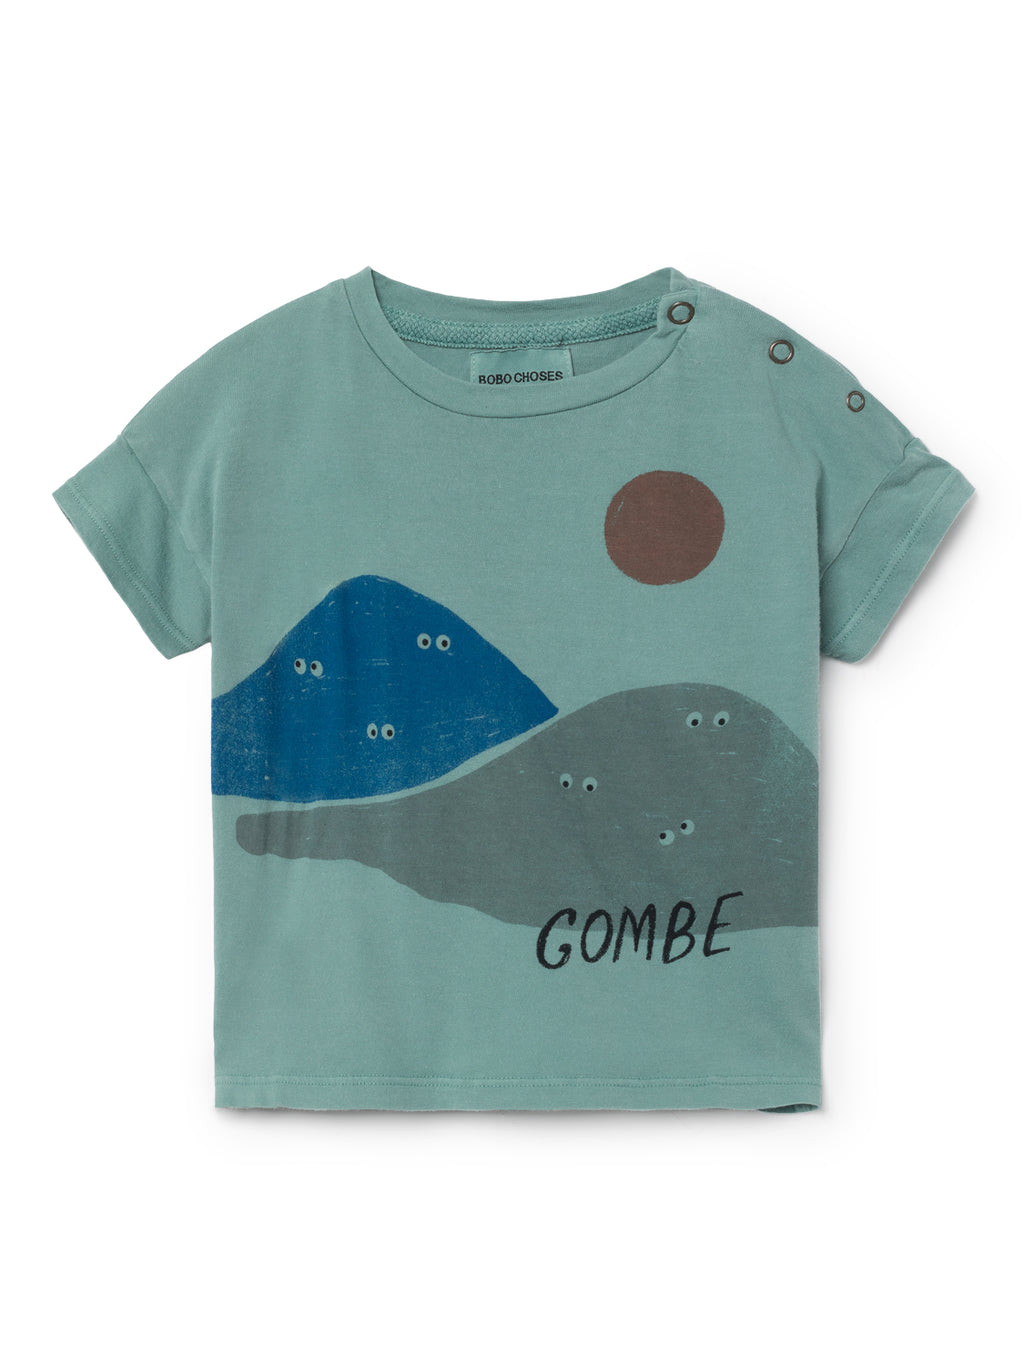 Bobo Choses Mountains Short Sleeve T-Shirt